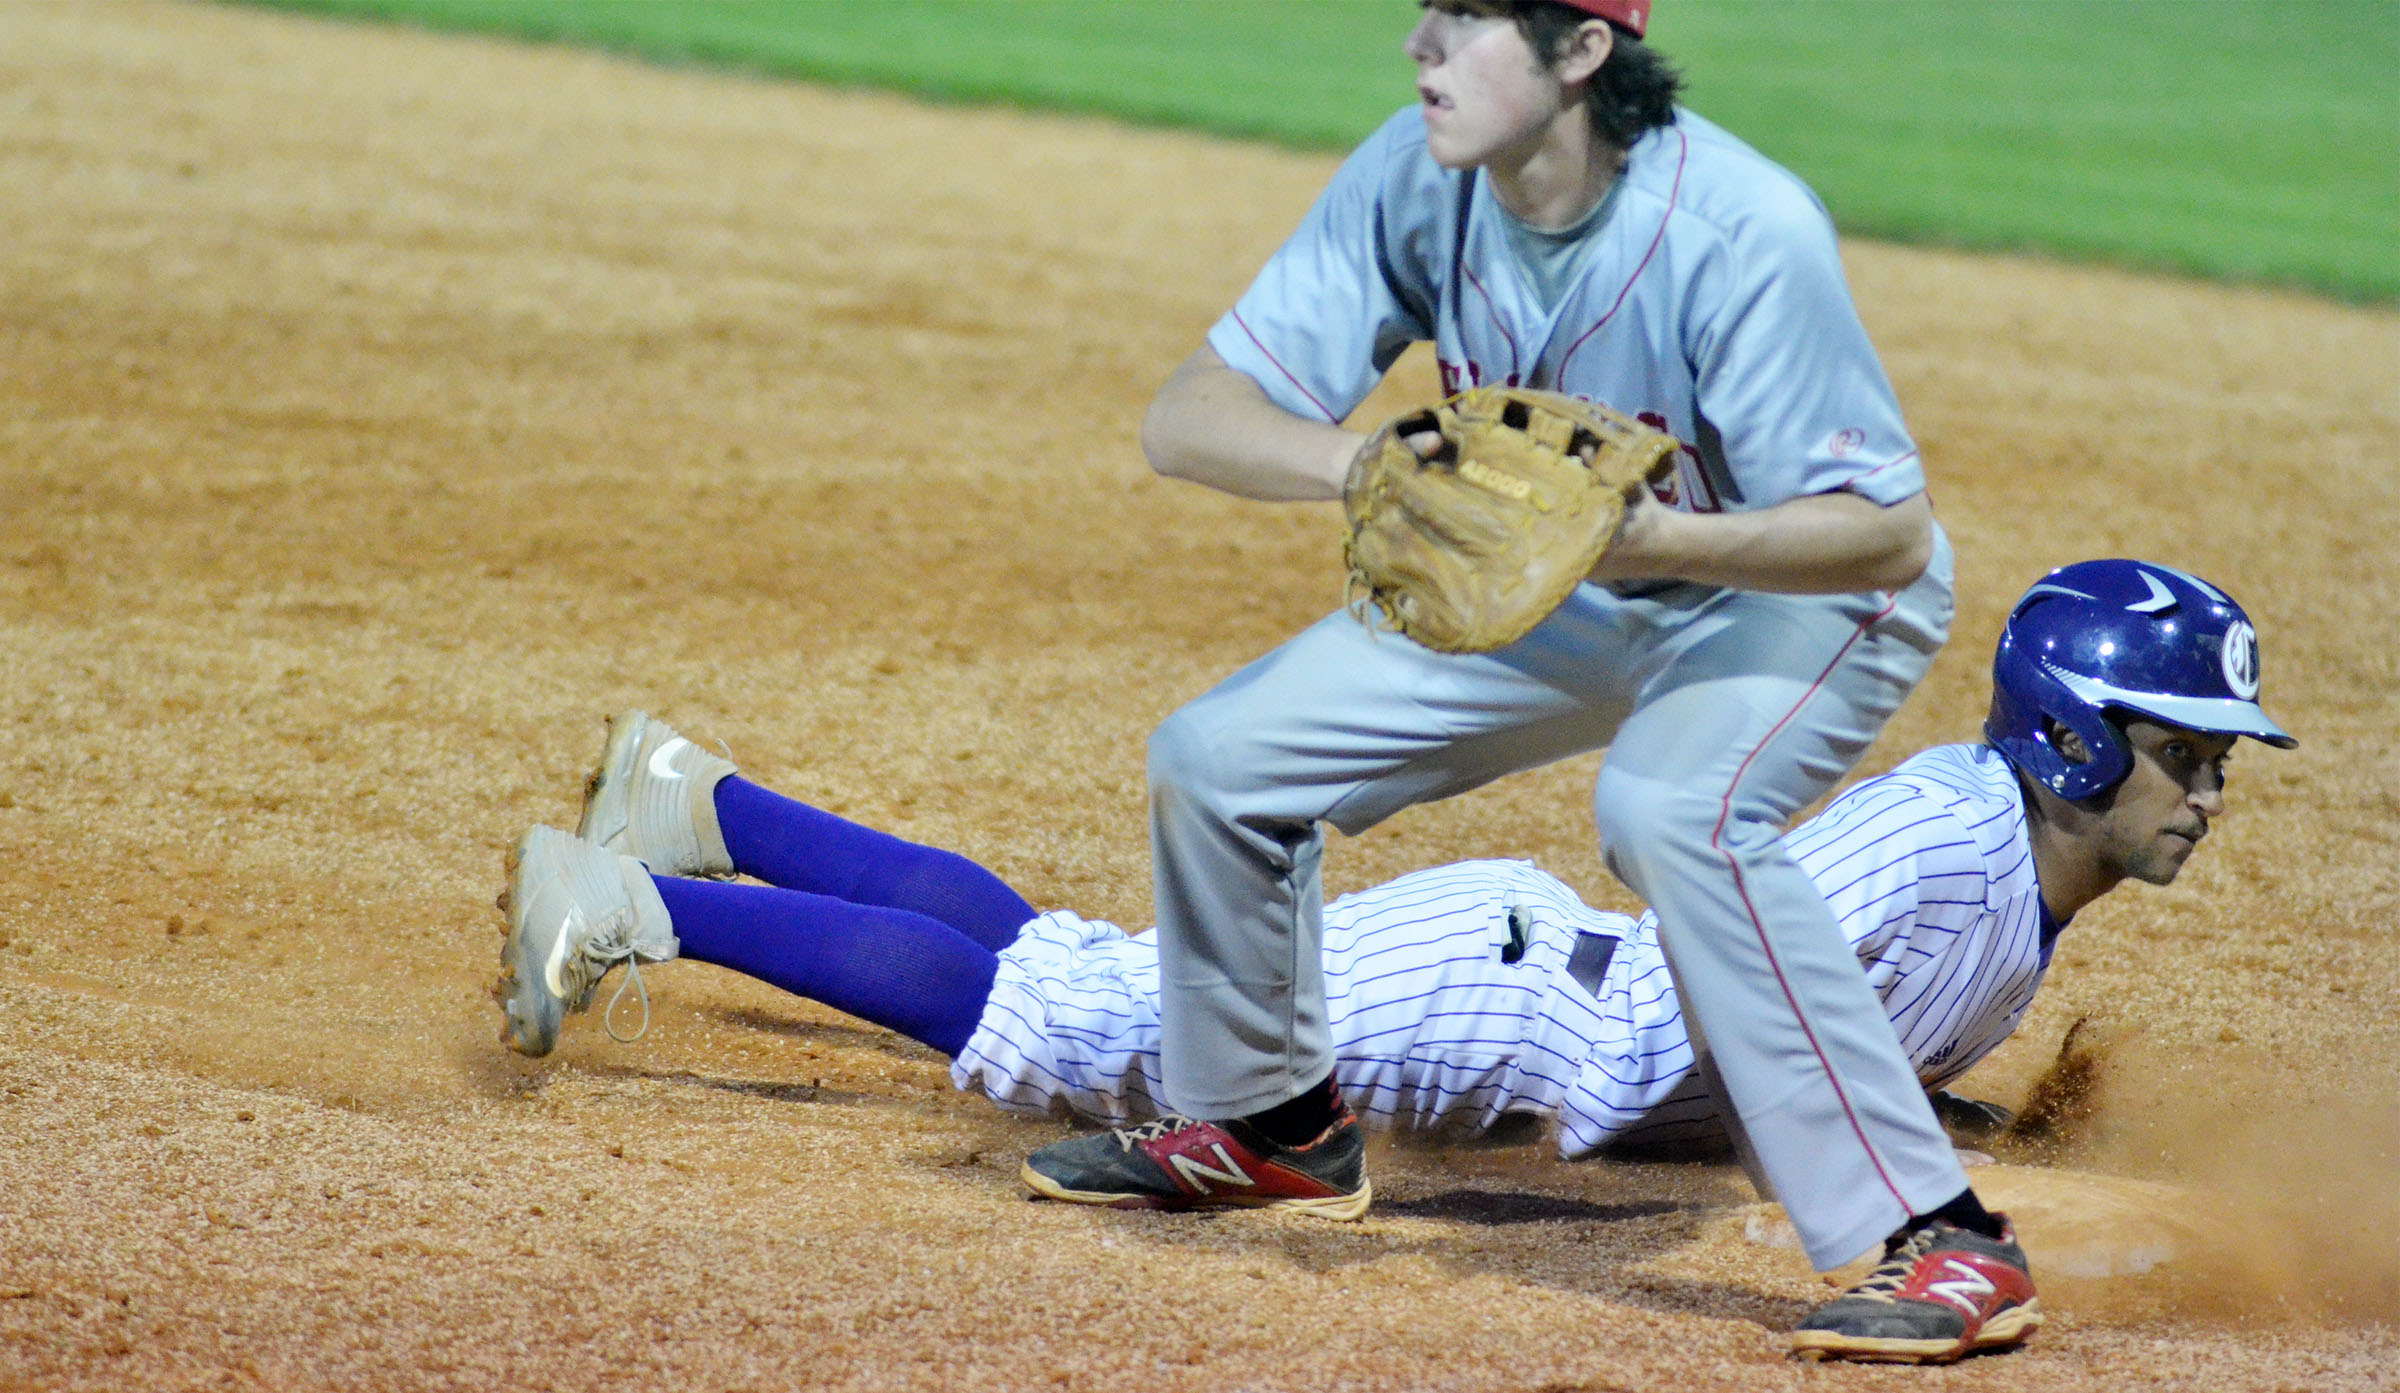 CHS junior Ethan Lay is safe at first.